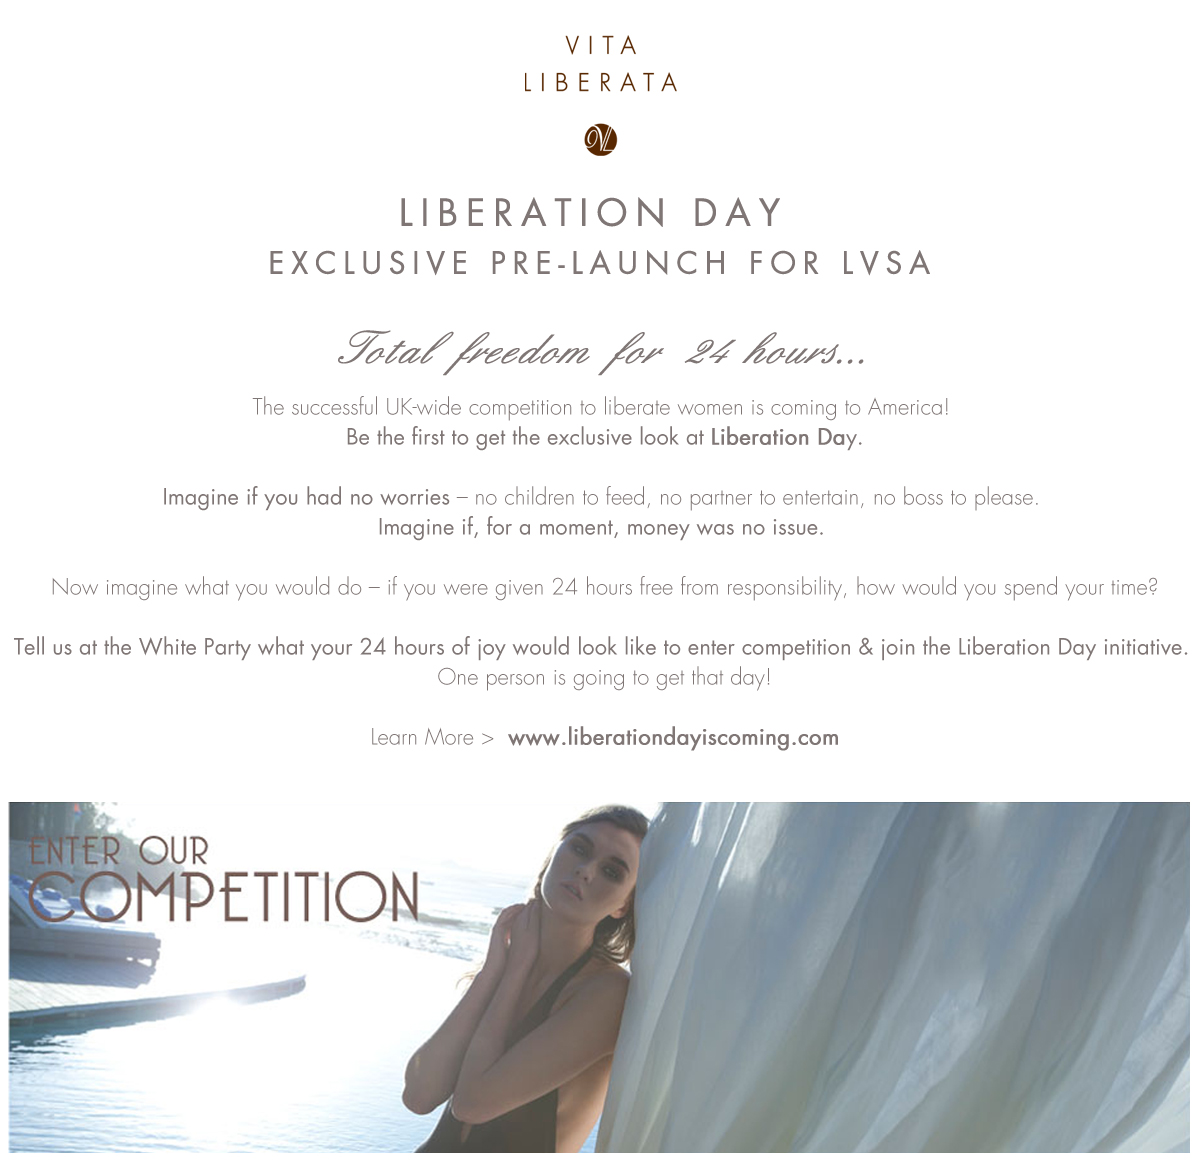 Liberation Day LVSA Exclusive Pre-Launch